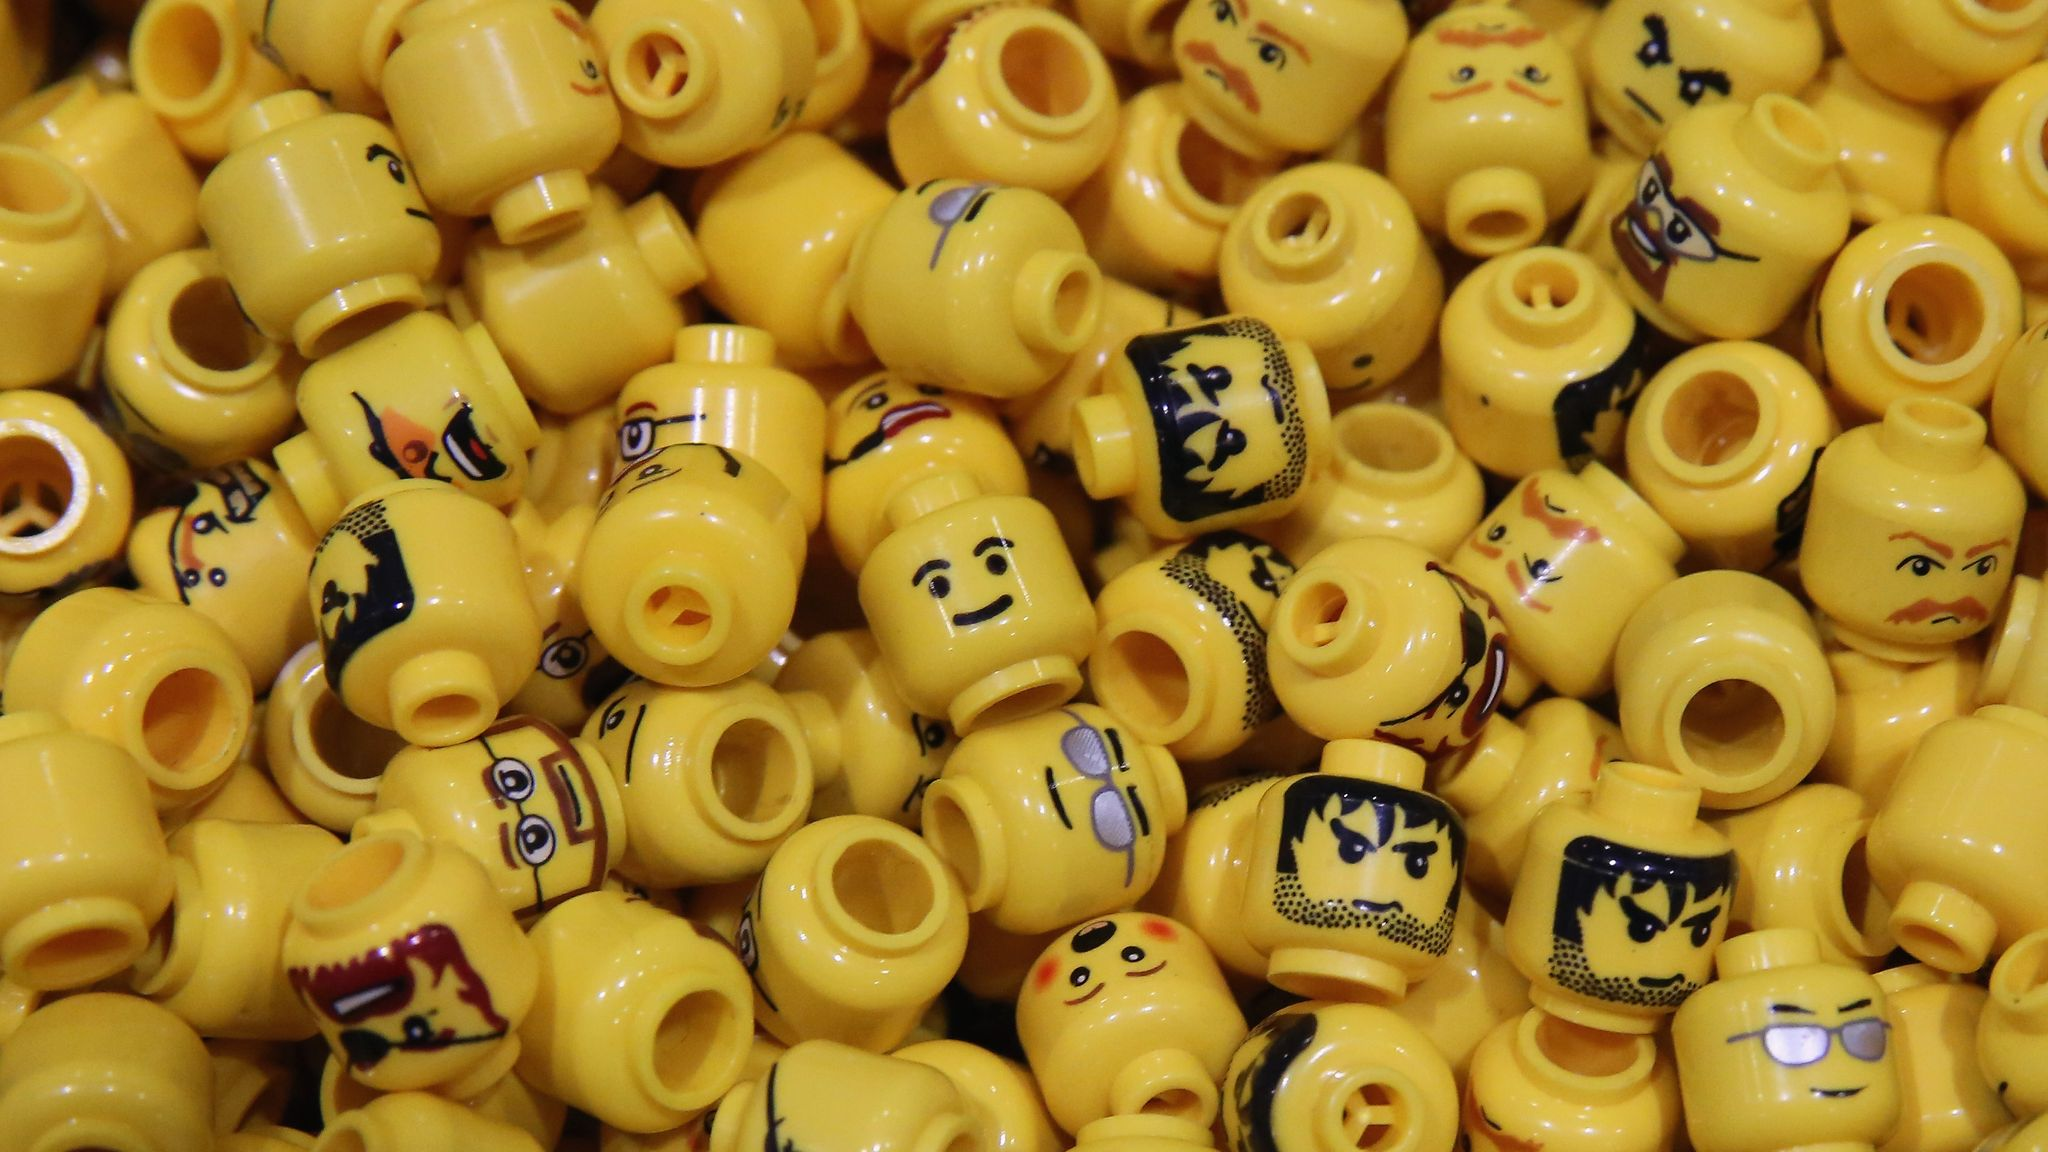 Lego to trial recycling scheme for bricks